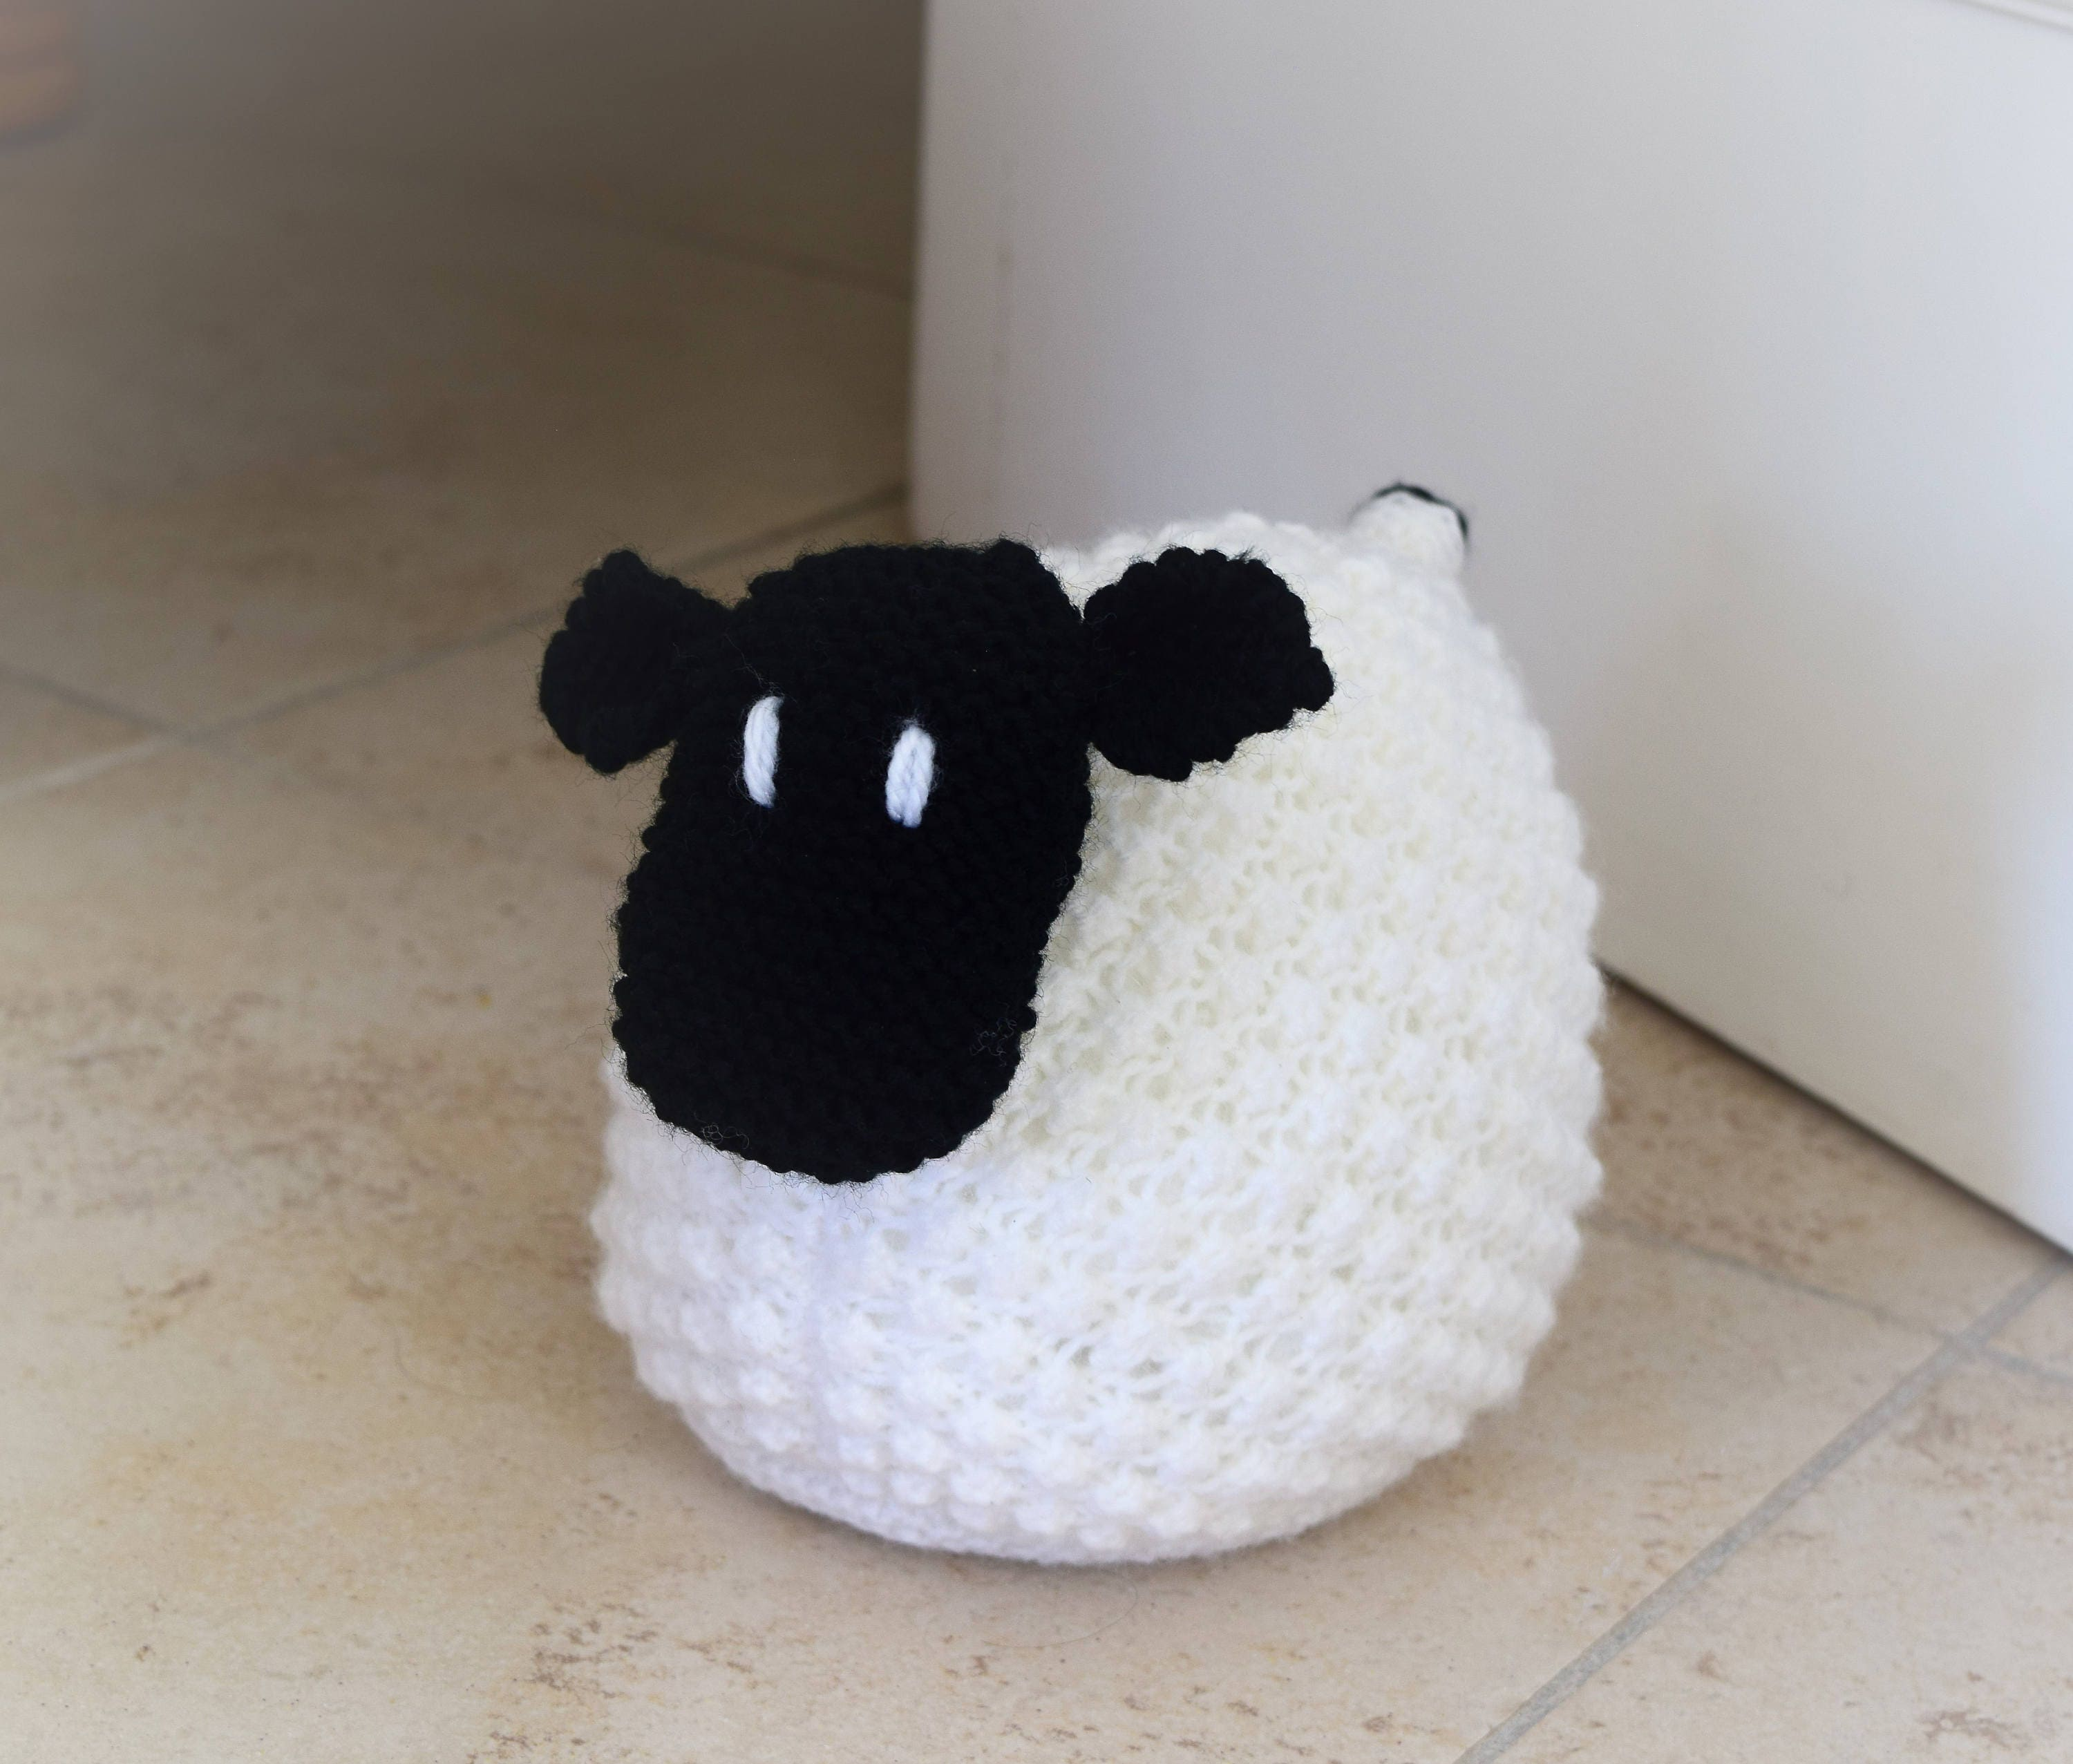 Doorstop knitting pattern sheep knitting pattern sheep doorstop doorstop knitting pattern sheep knitting pattern sheep doorstop door stop knitting pattern handmade sheep pattern sheep ornament bankloansurffo Gallery